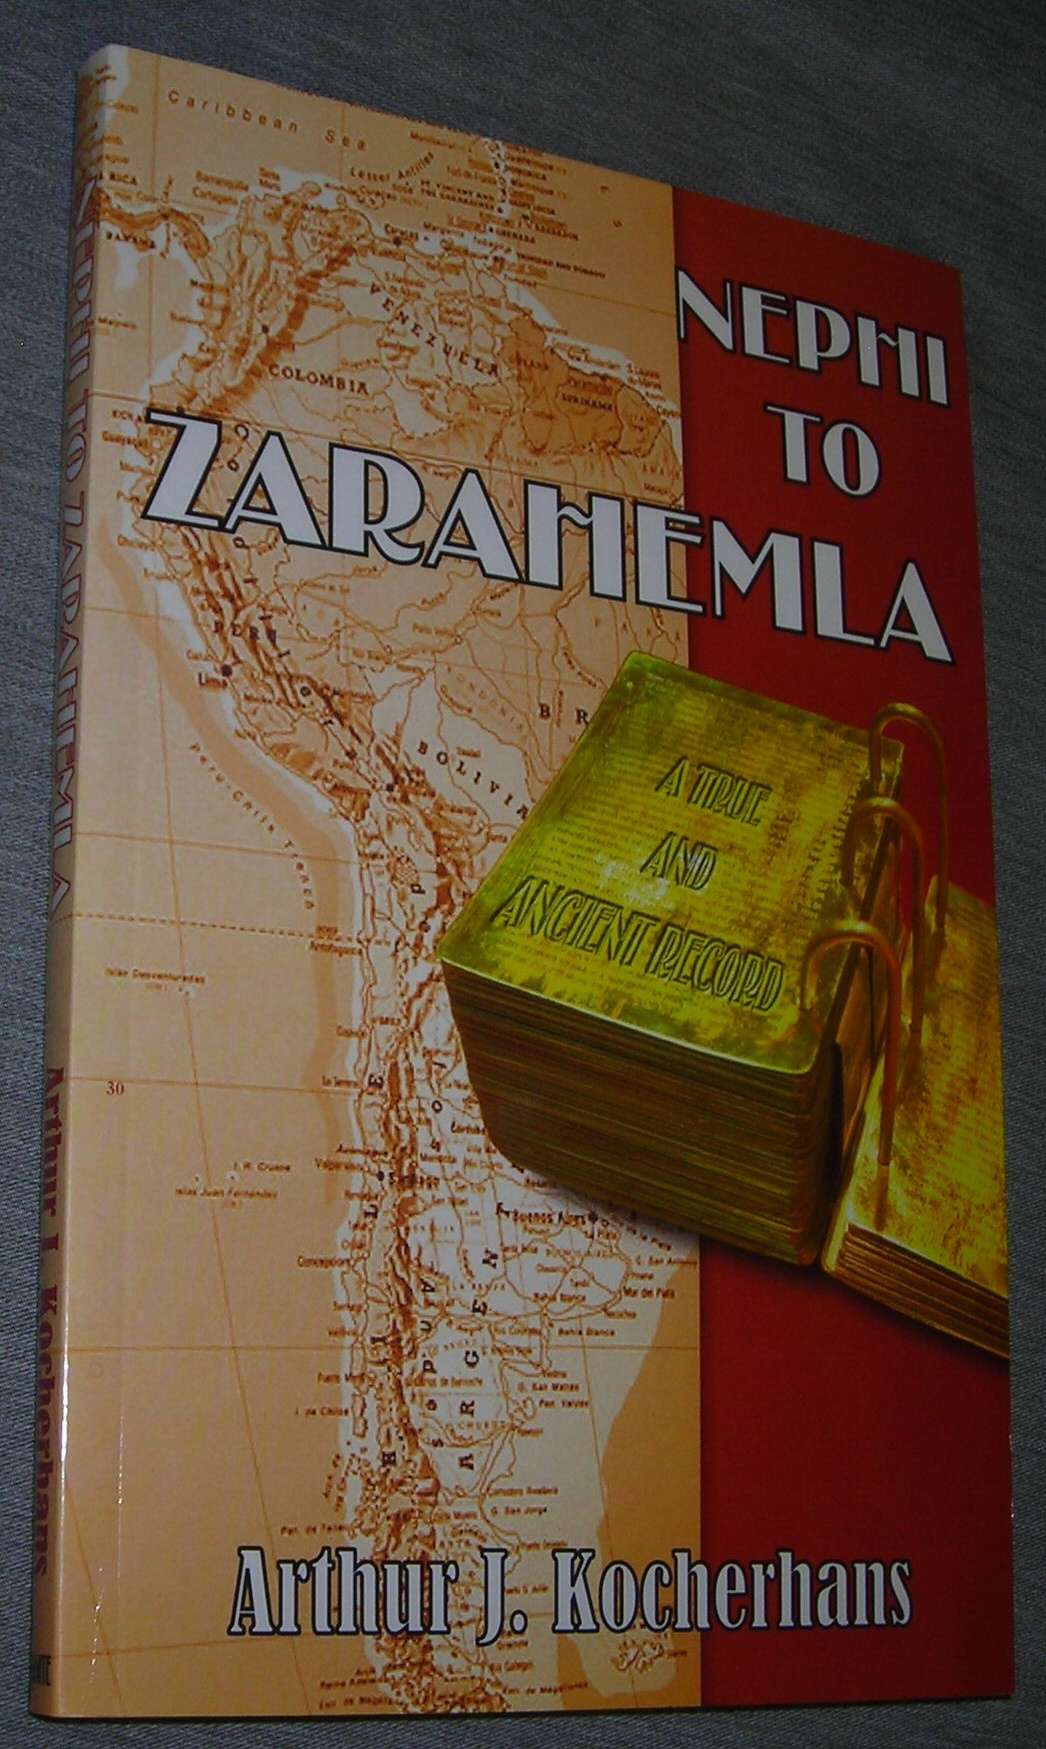 Image for NEPHI TO ZARAHEMLA - A True and Ancient Record - a Scriptural Account with Word Definitions and Commentary